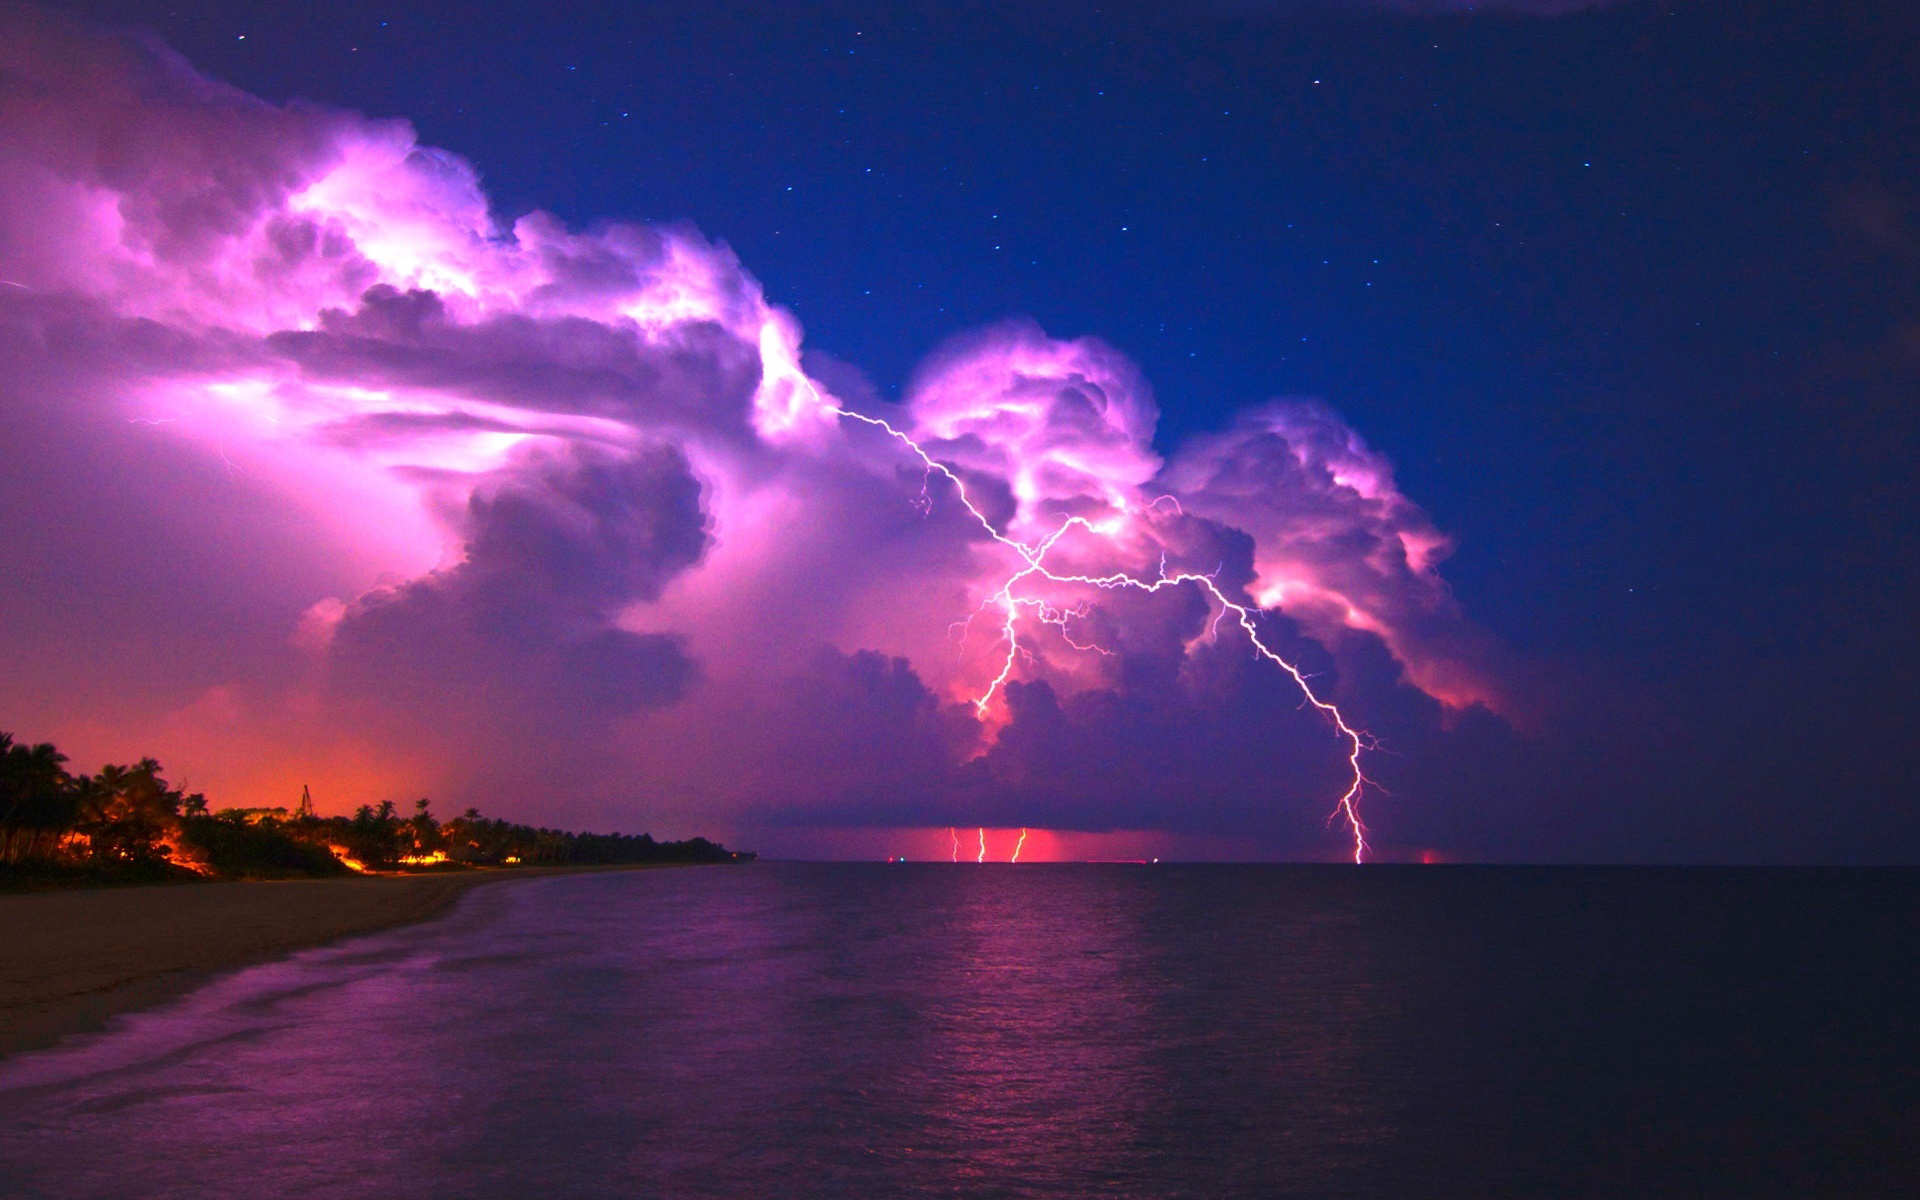 lightning full hd wallpaper and background image | 1920x1200 | id:357028